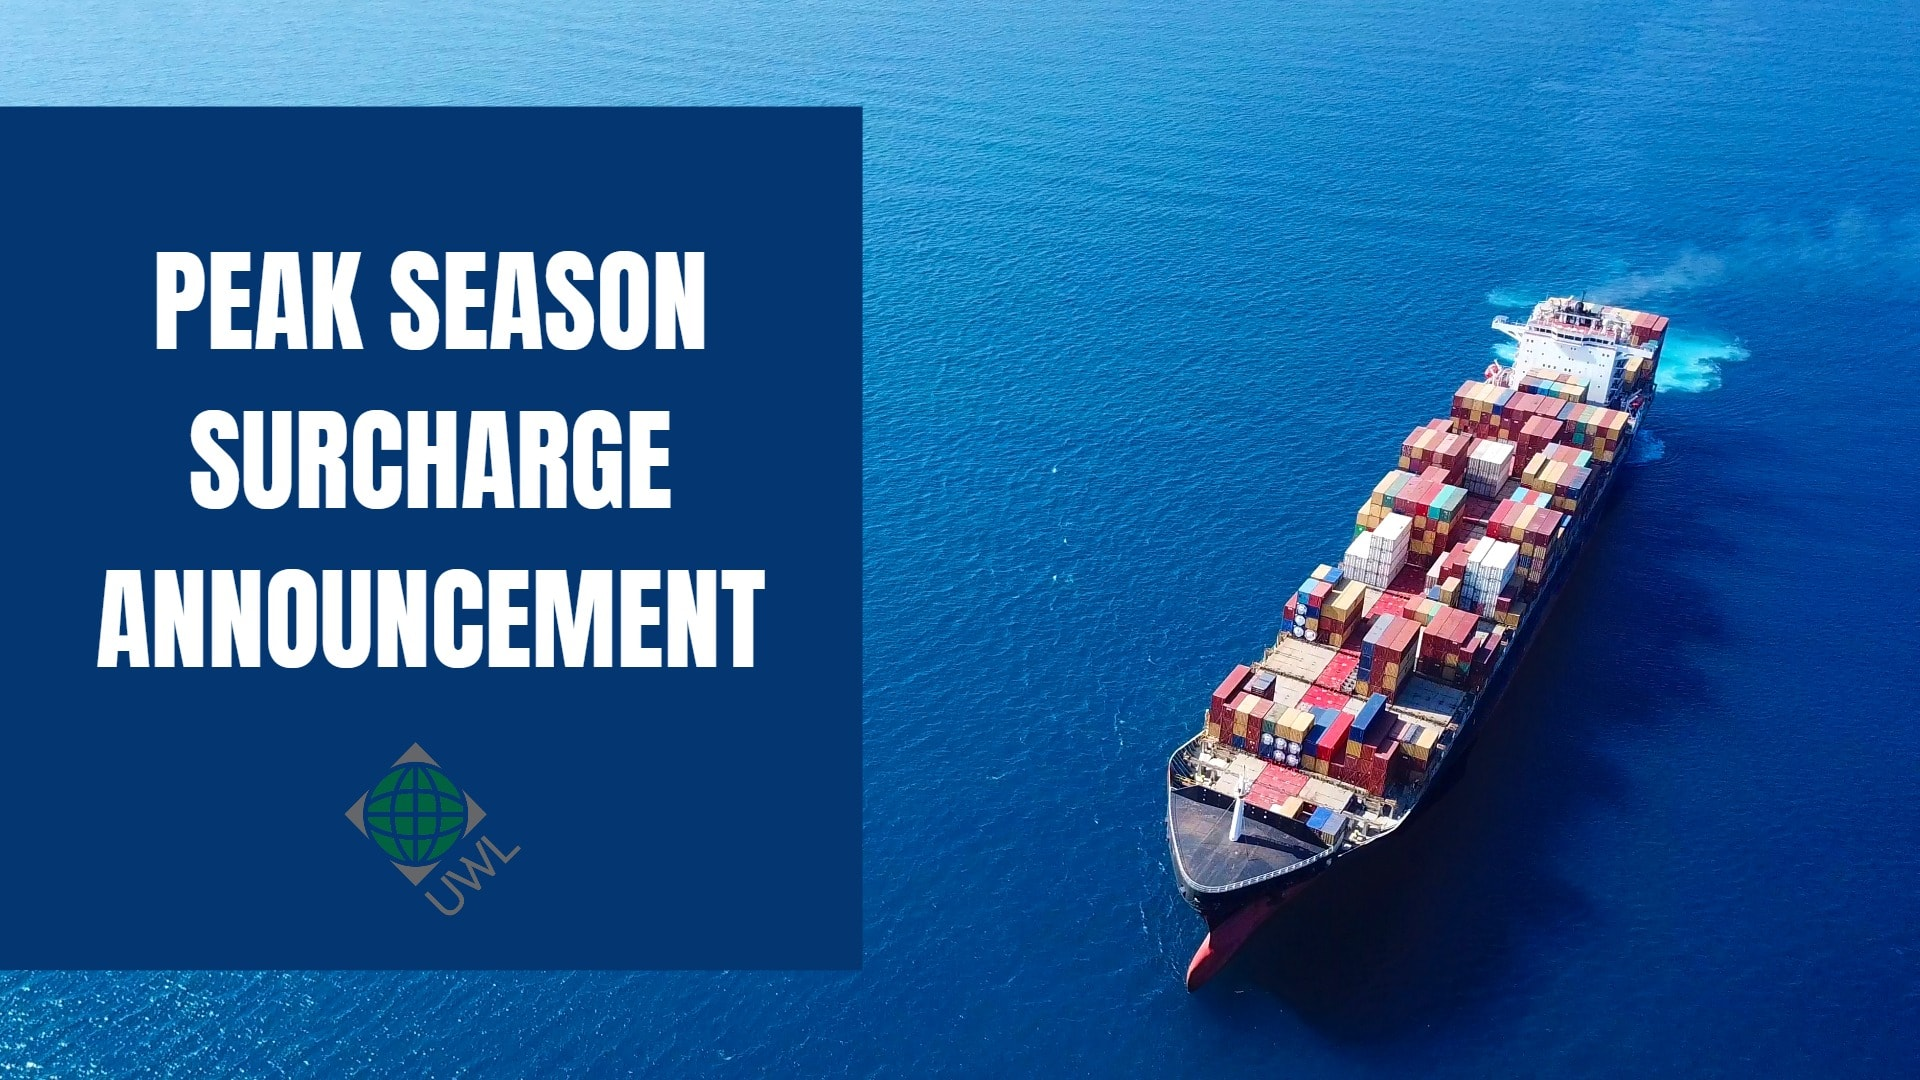 Peak-Season-Surcharge-Announcement-Cover-UWL-Customer-Alerts